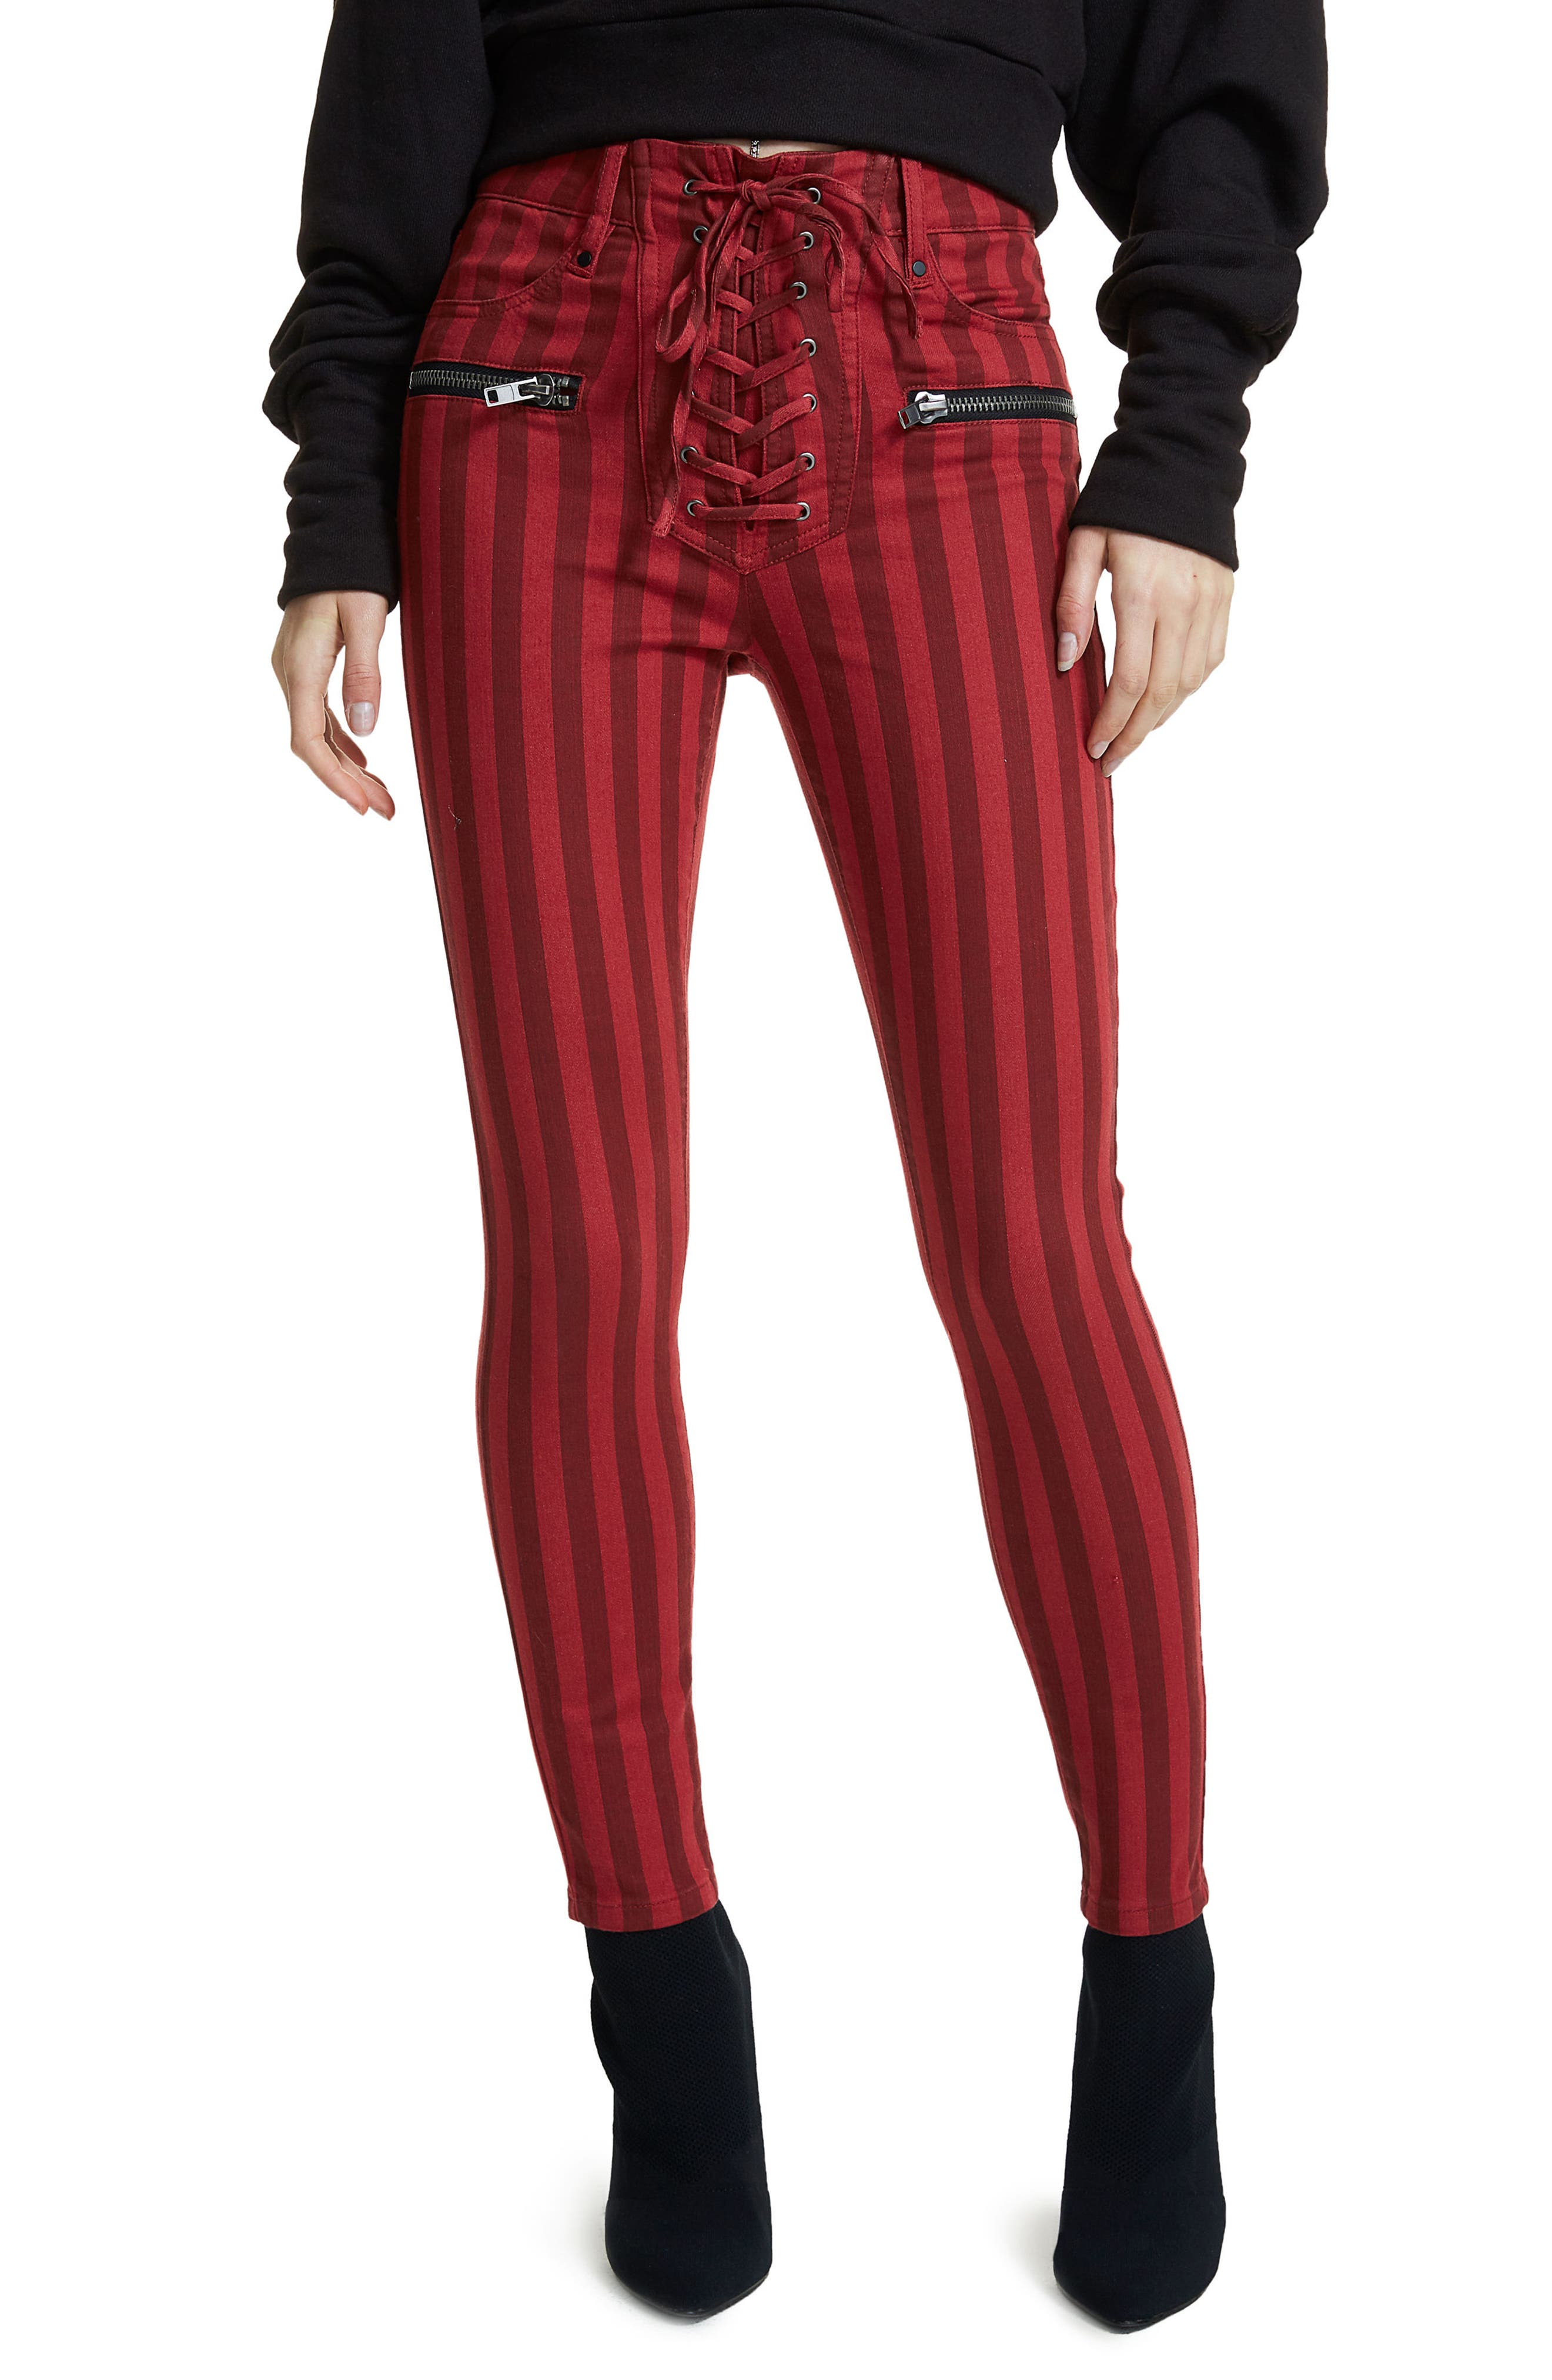 Alden Lace-Up Skinny Jeans,                         Main,                         color, Red Stripe